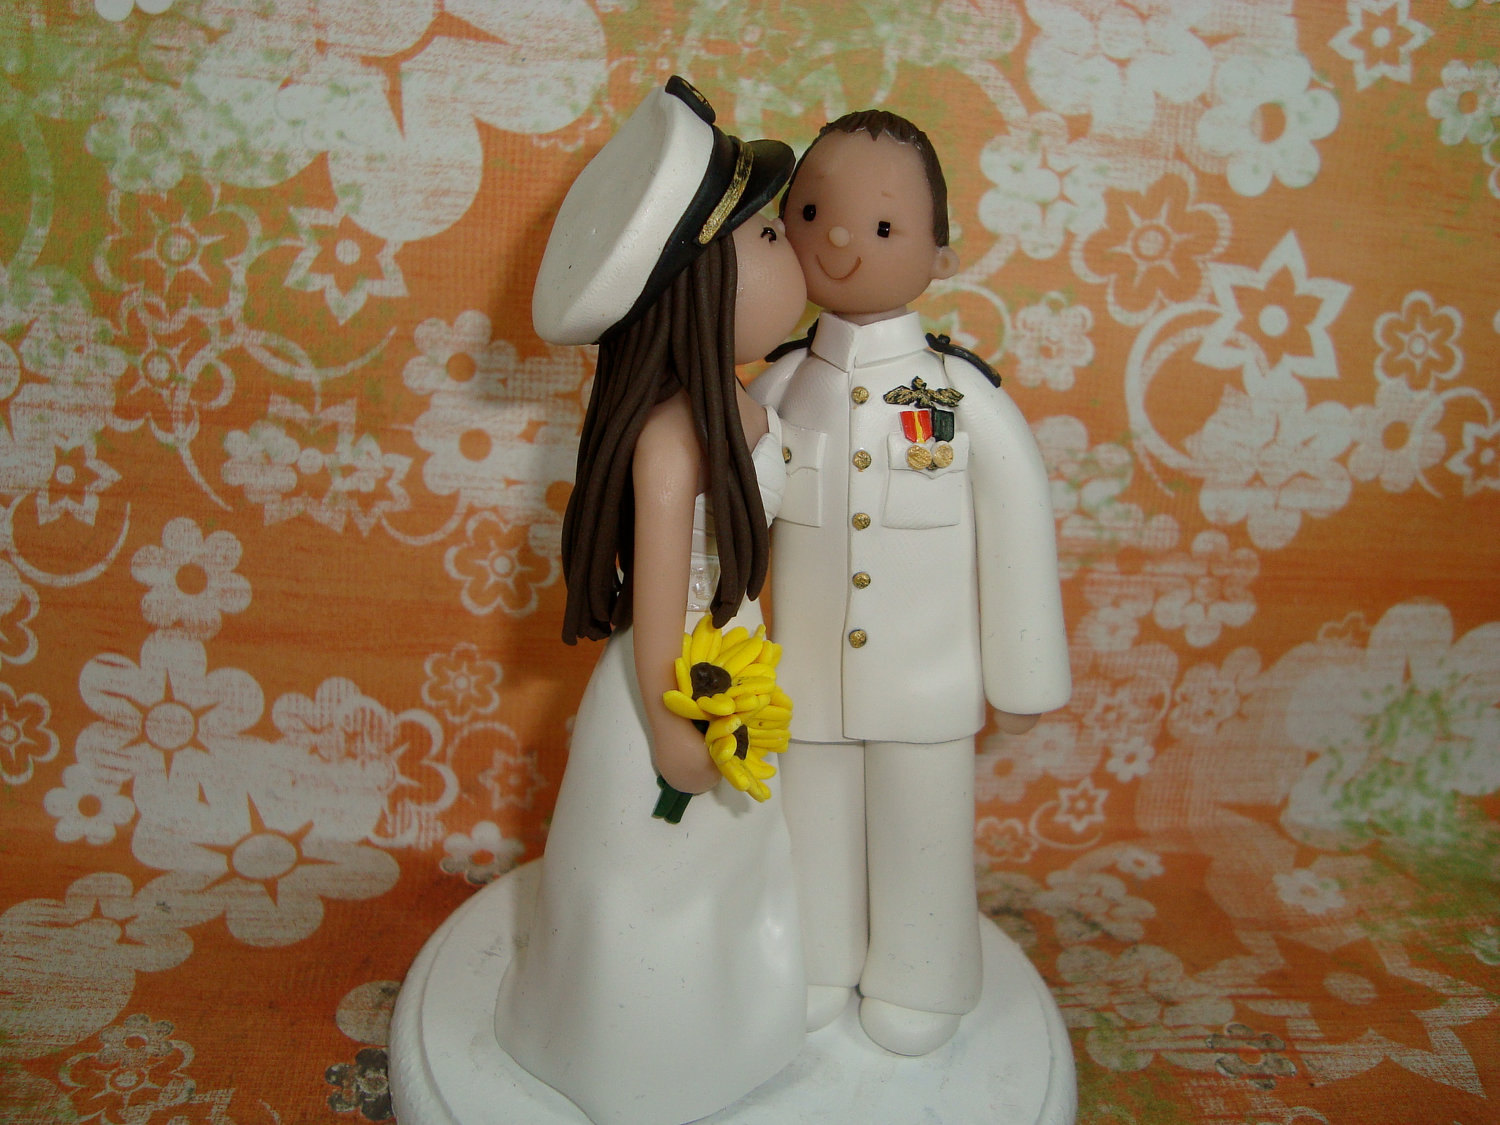 funny cute wedding cake toppers may 2013. Black Bedroom Furniture Sets. Home Design Ideas